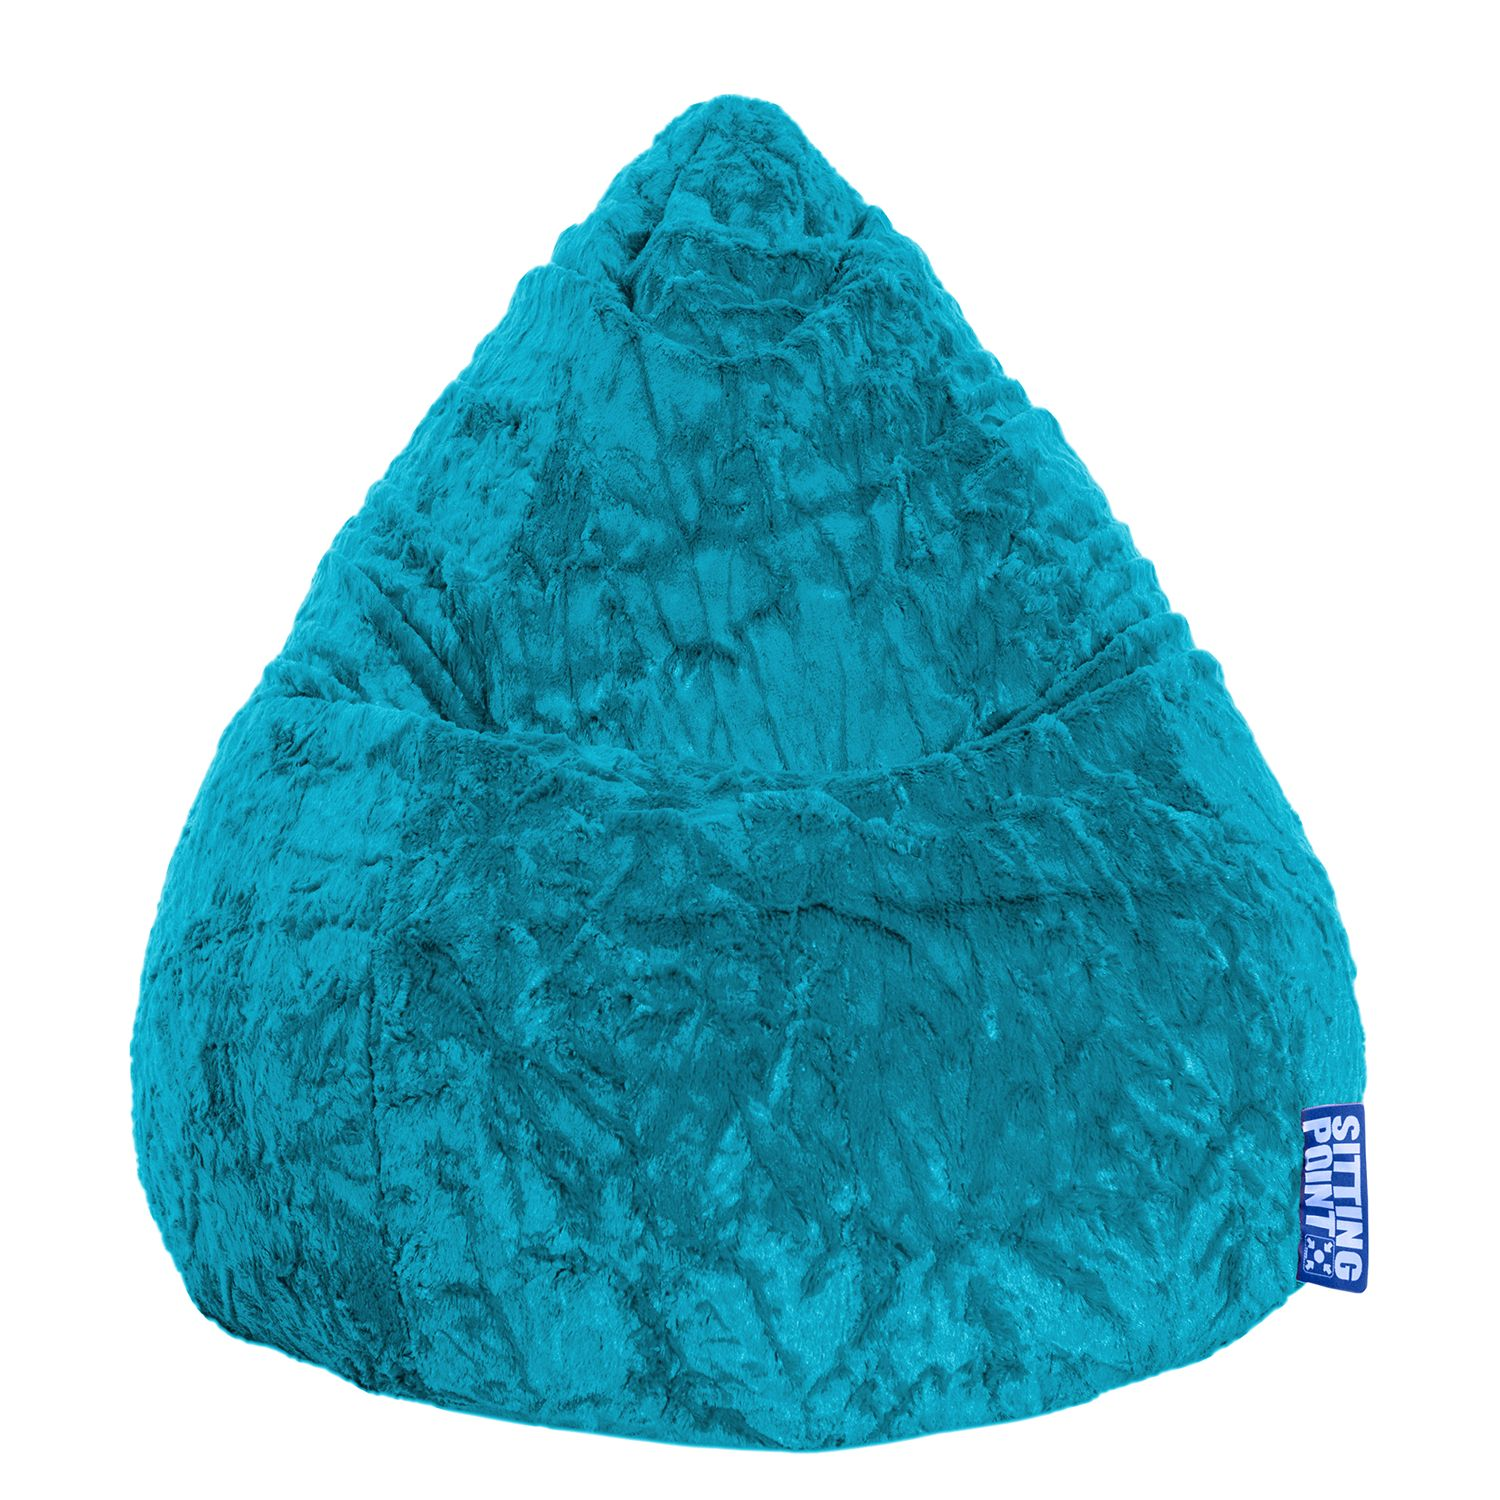 goedkoop Zitzak Fluffy XL blauw Turquoise SITTING POINT